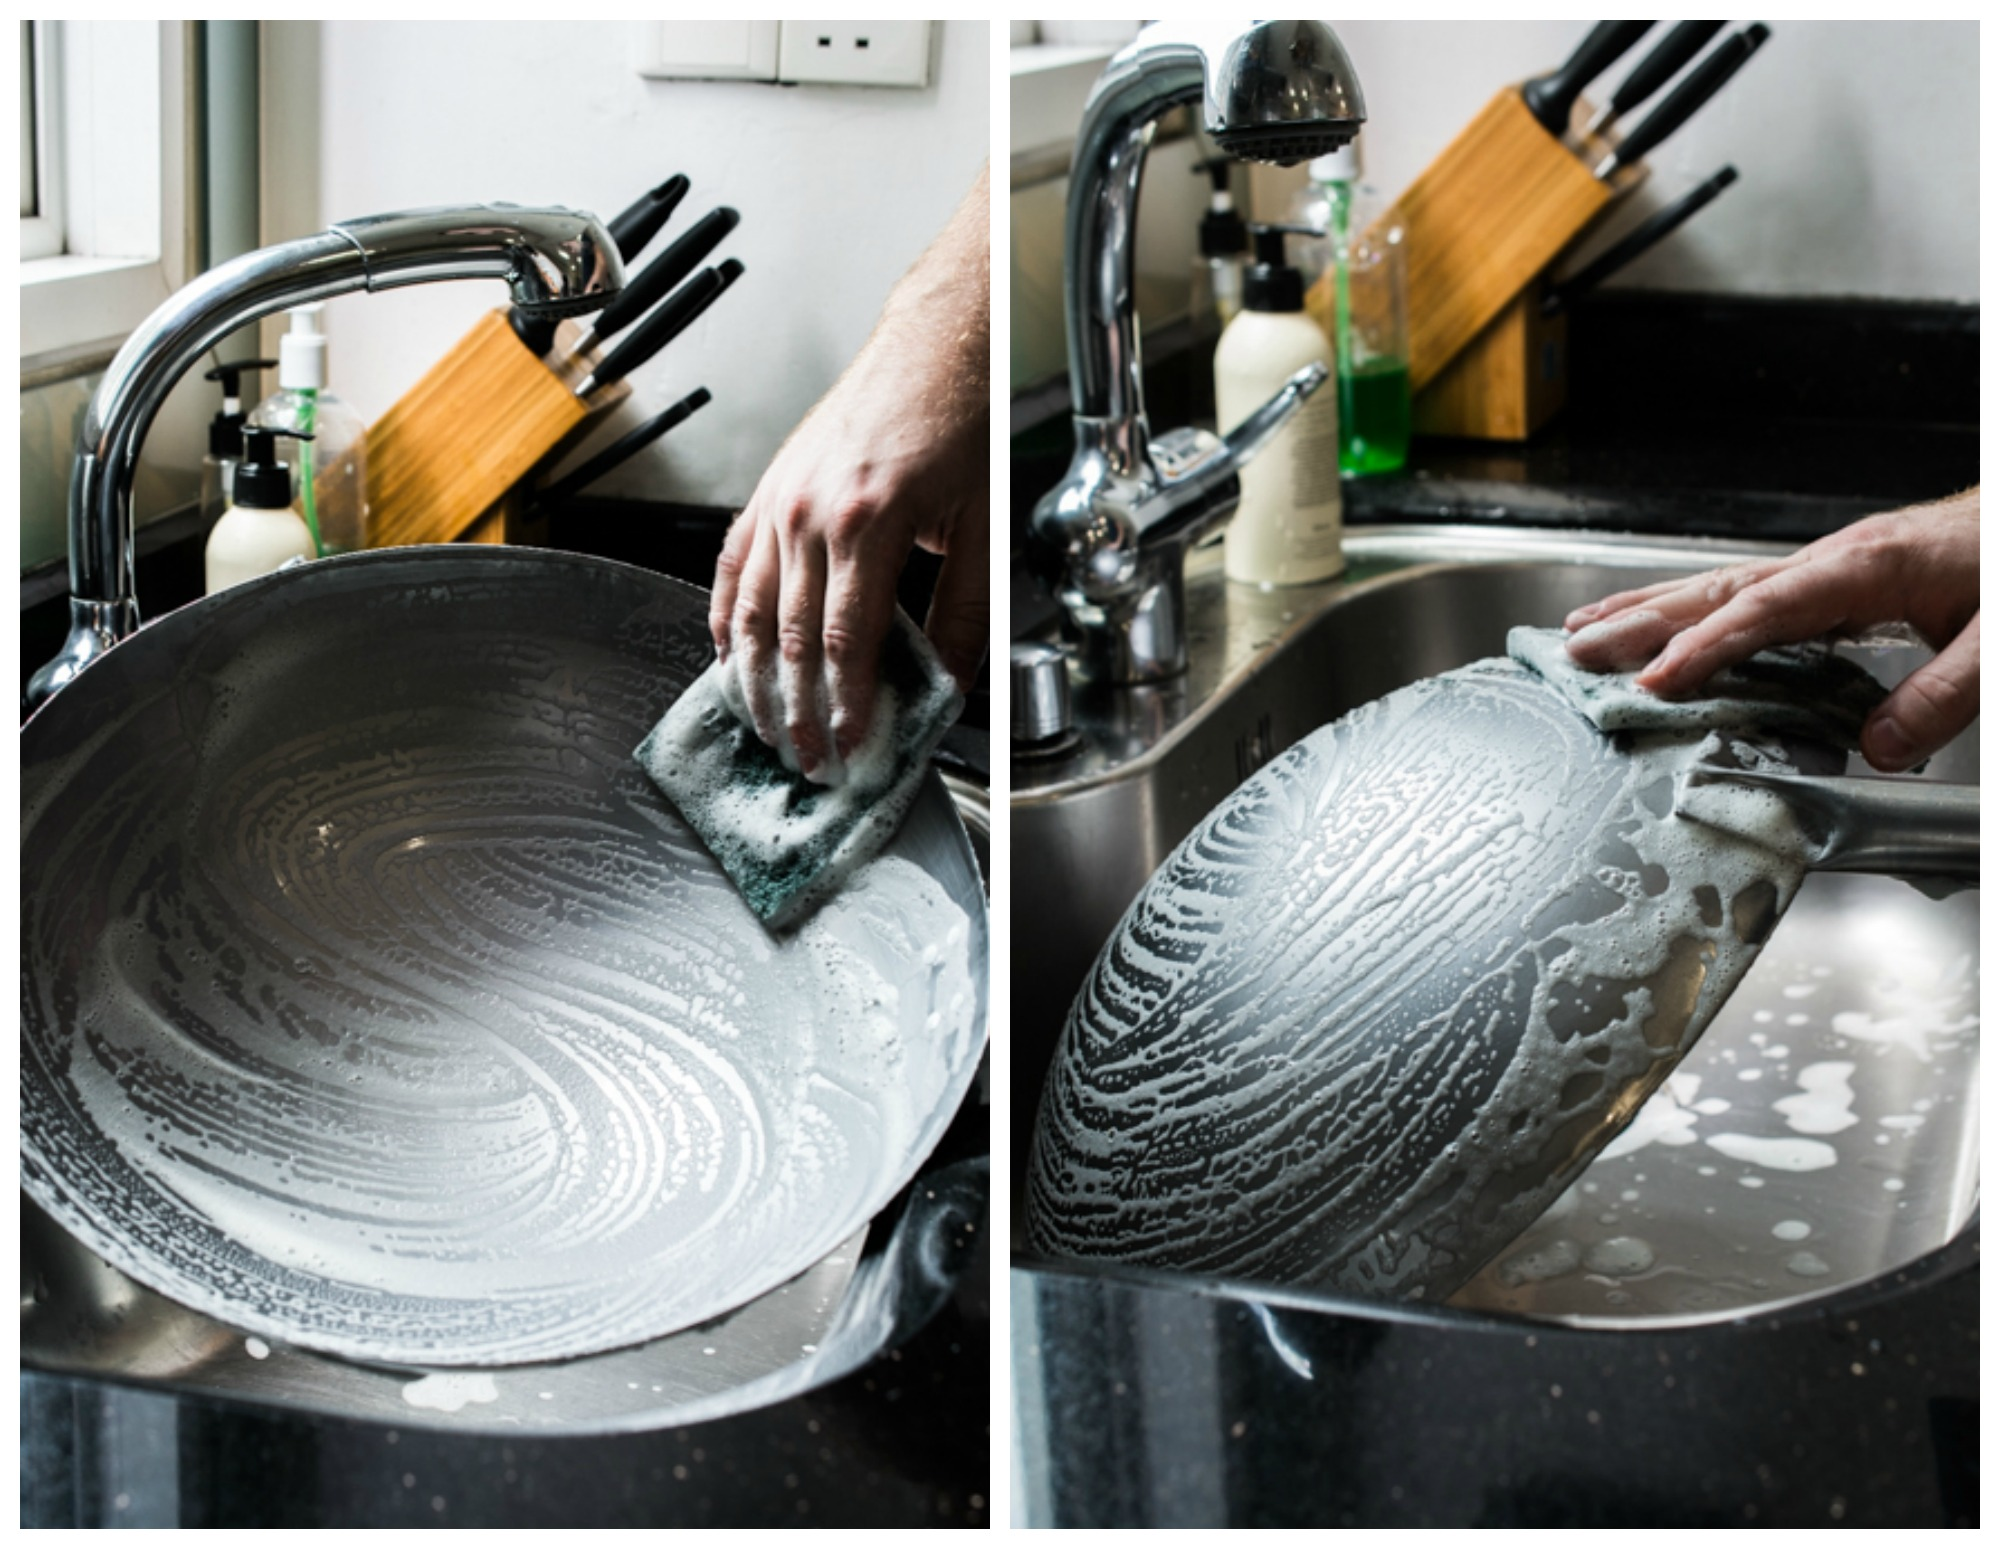 How To Season A Wok How To Season A Wok A Step By Step Guide By Wok And Skillet